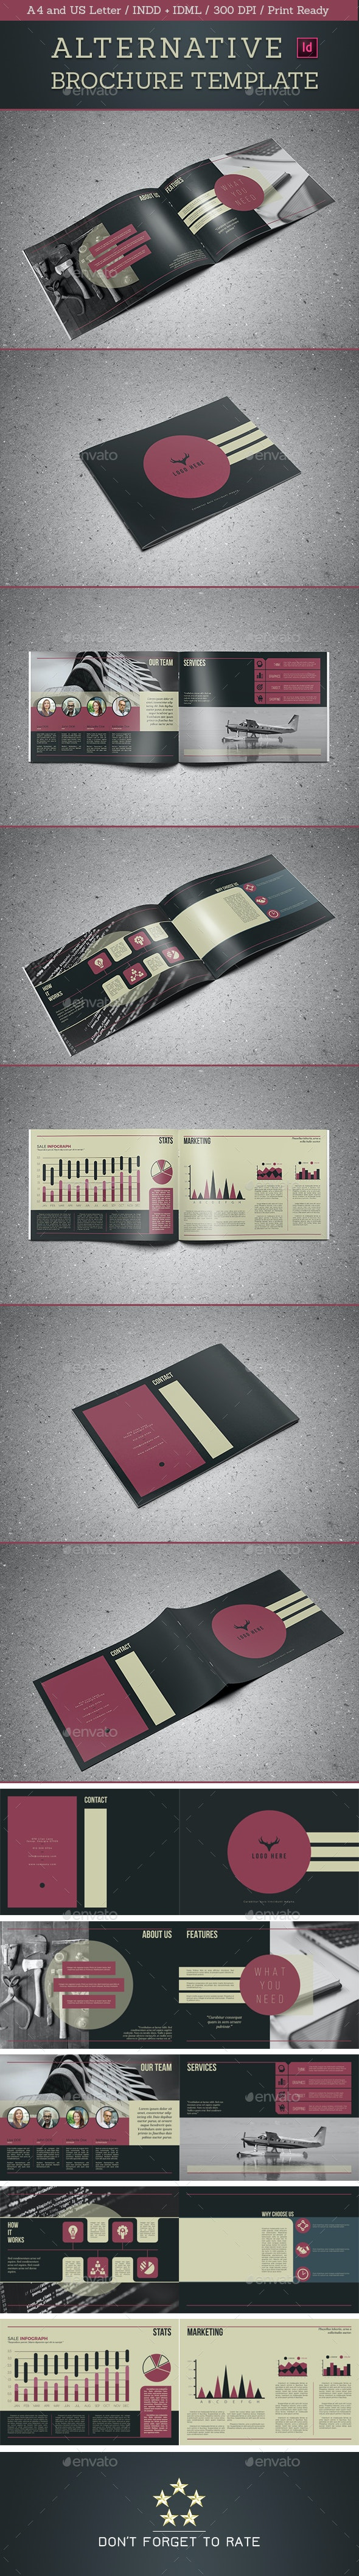 Alternative Landscape Brochure - Corporate Brochures